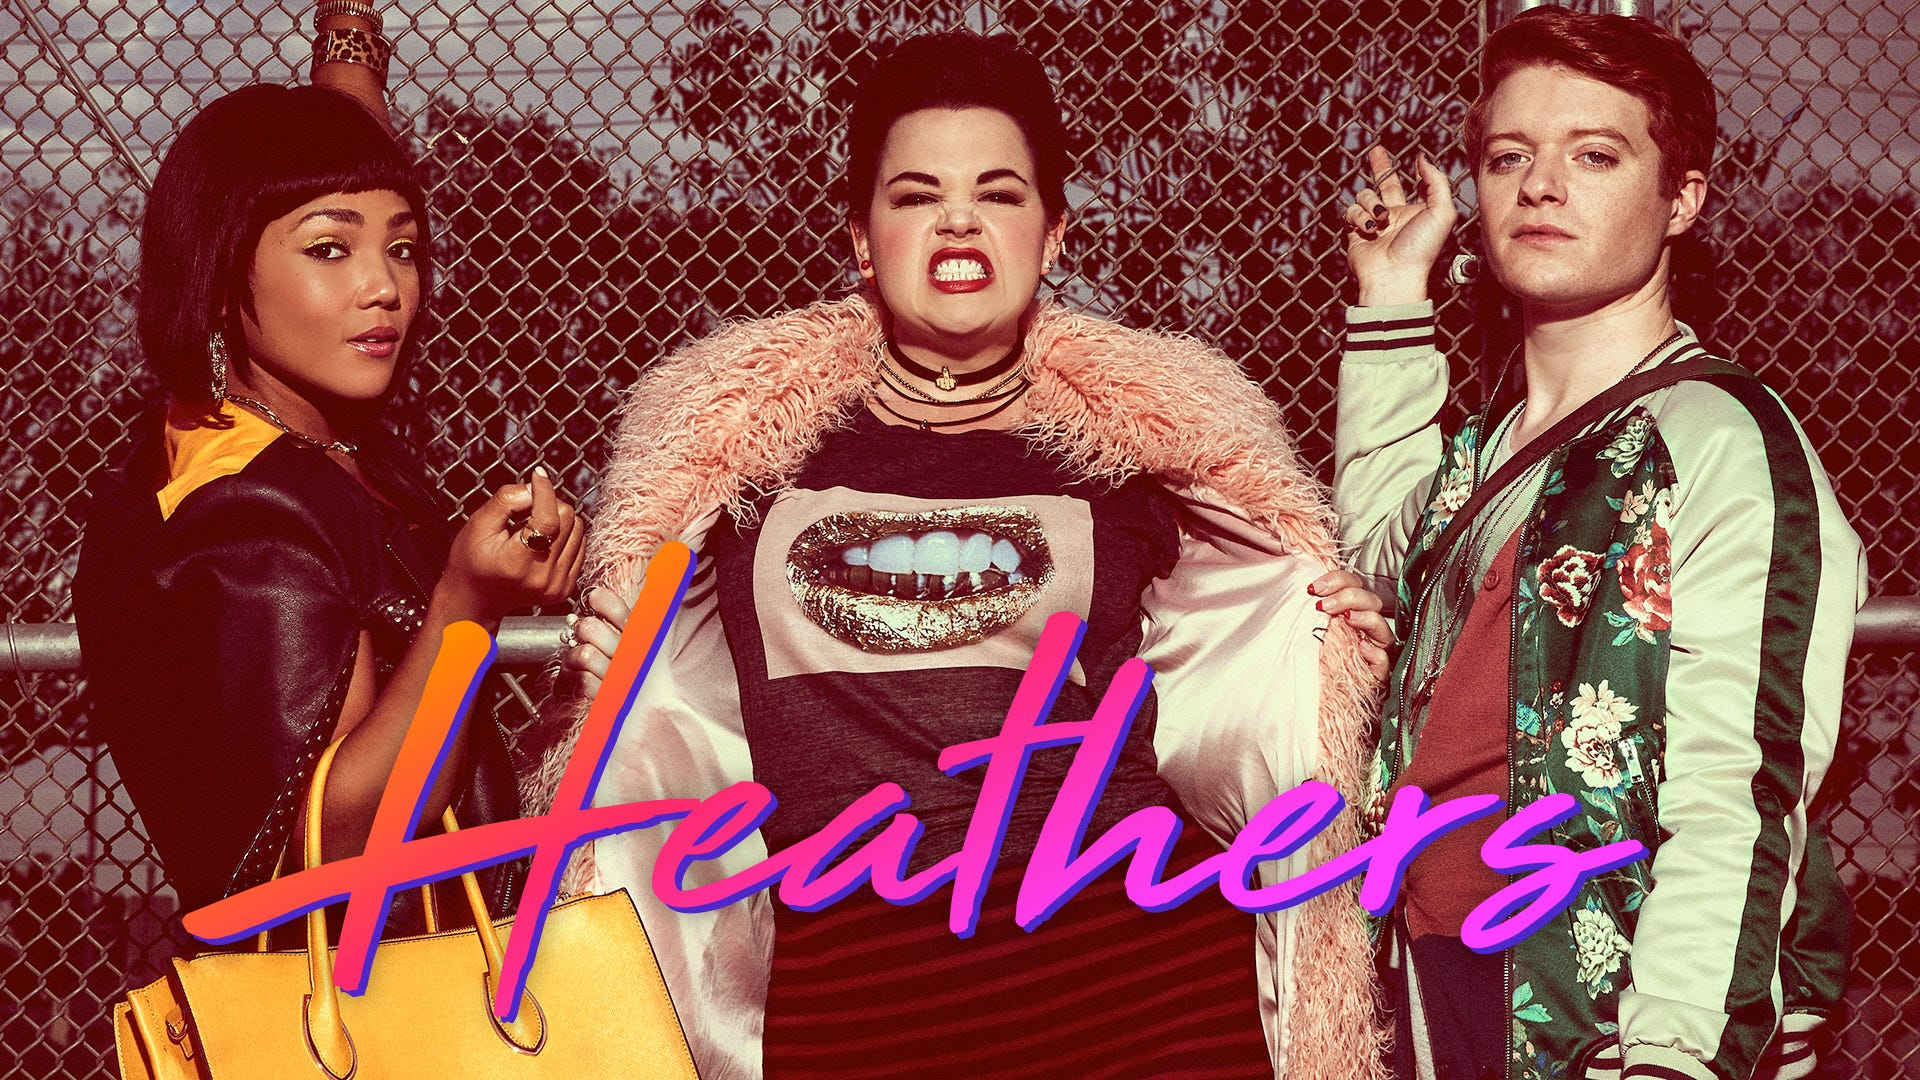 Heathers Lick It Up